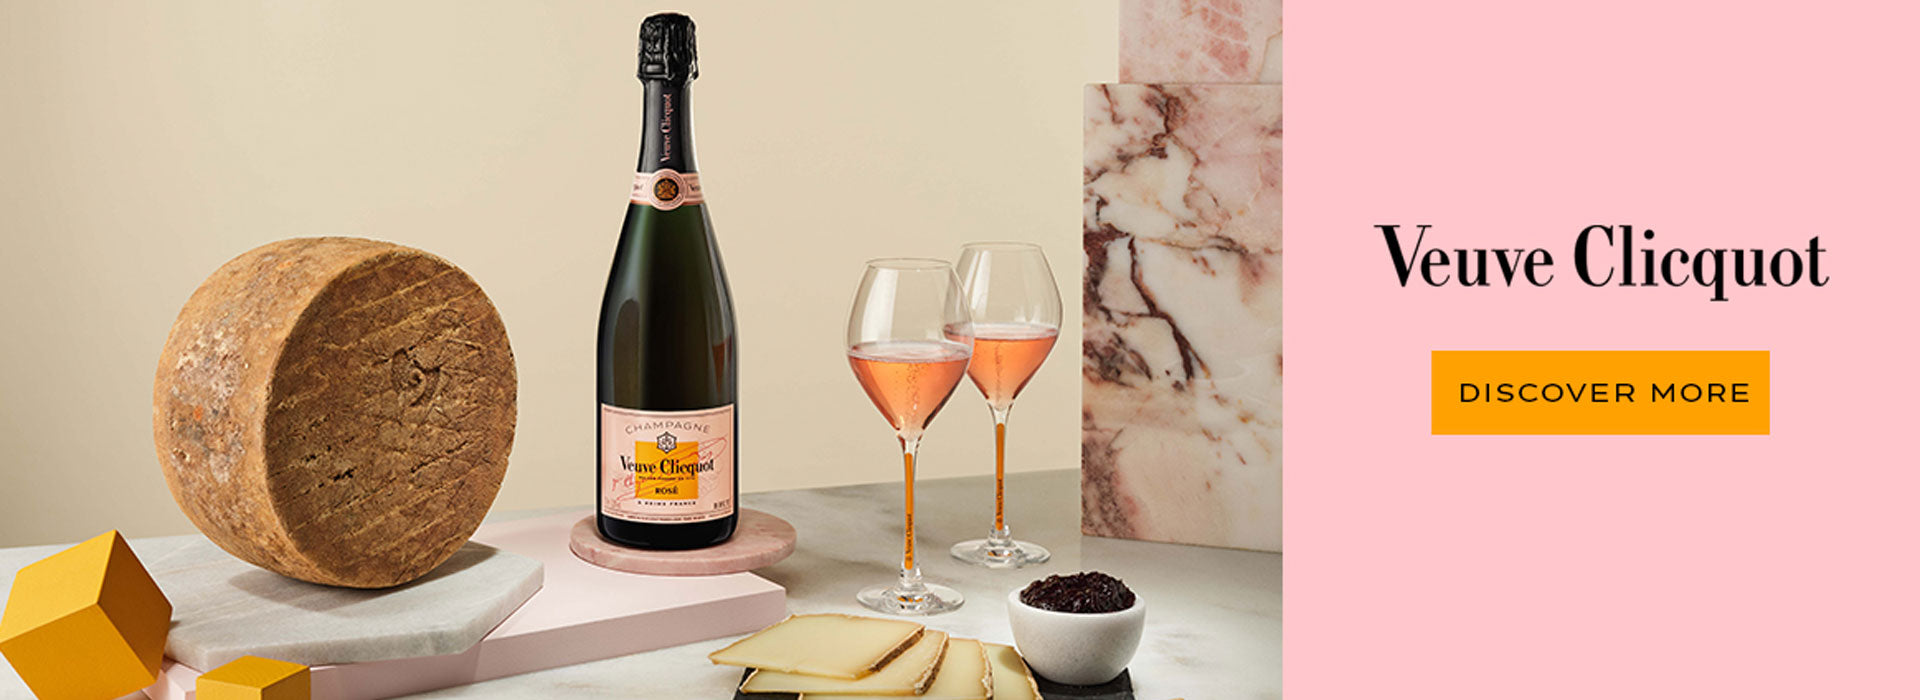 Buy Veuve Clicquot Champagne Online | Secret Bottle Shop